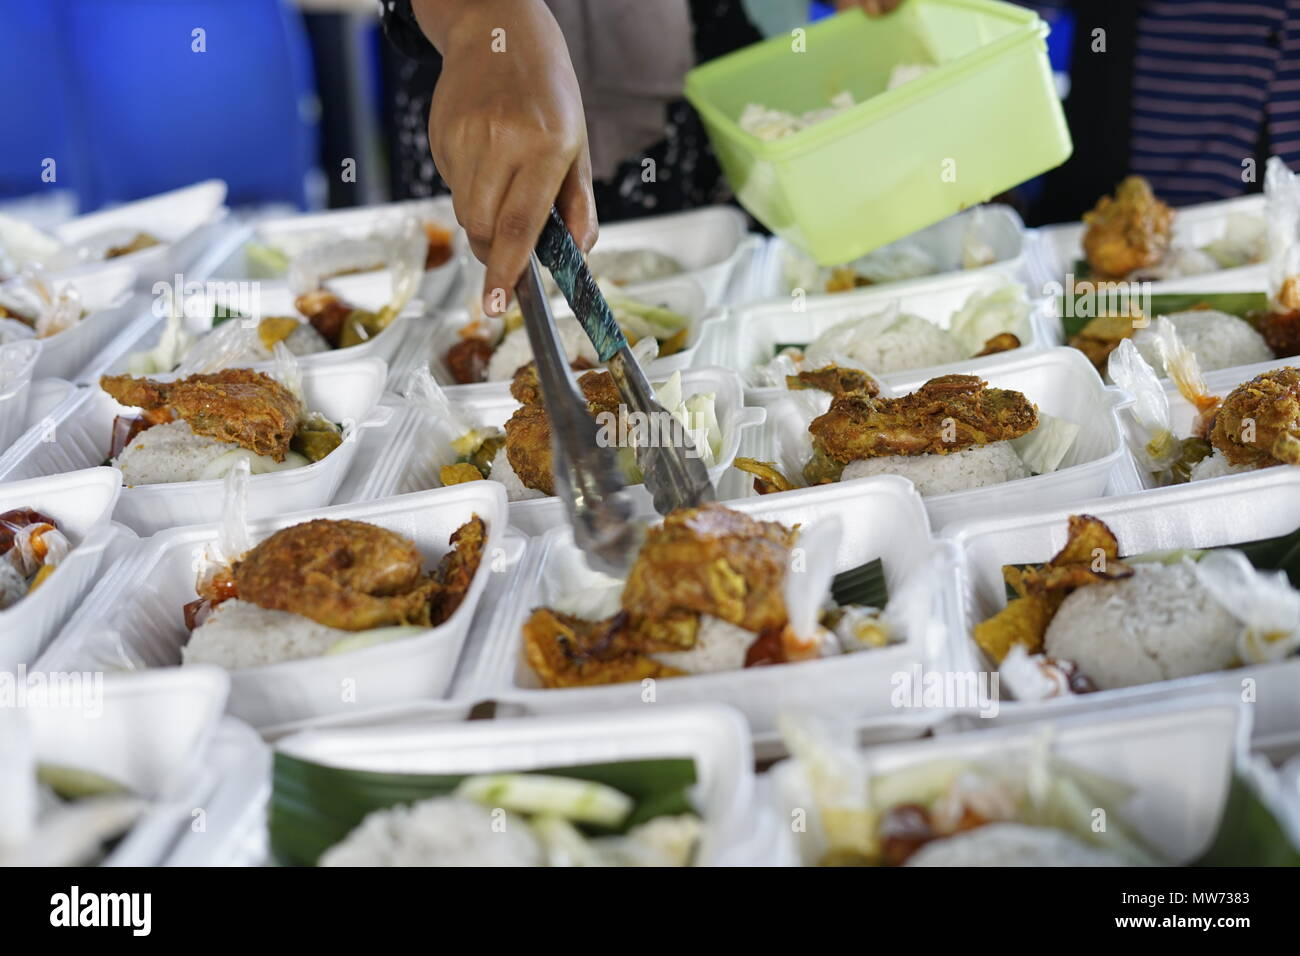 Vendor selling Crispy Fried chicken during fasting month at Street market food in Banda Aceh, Indonesia - Stock Image